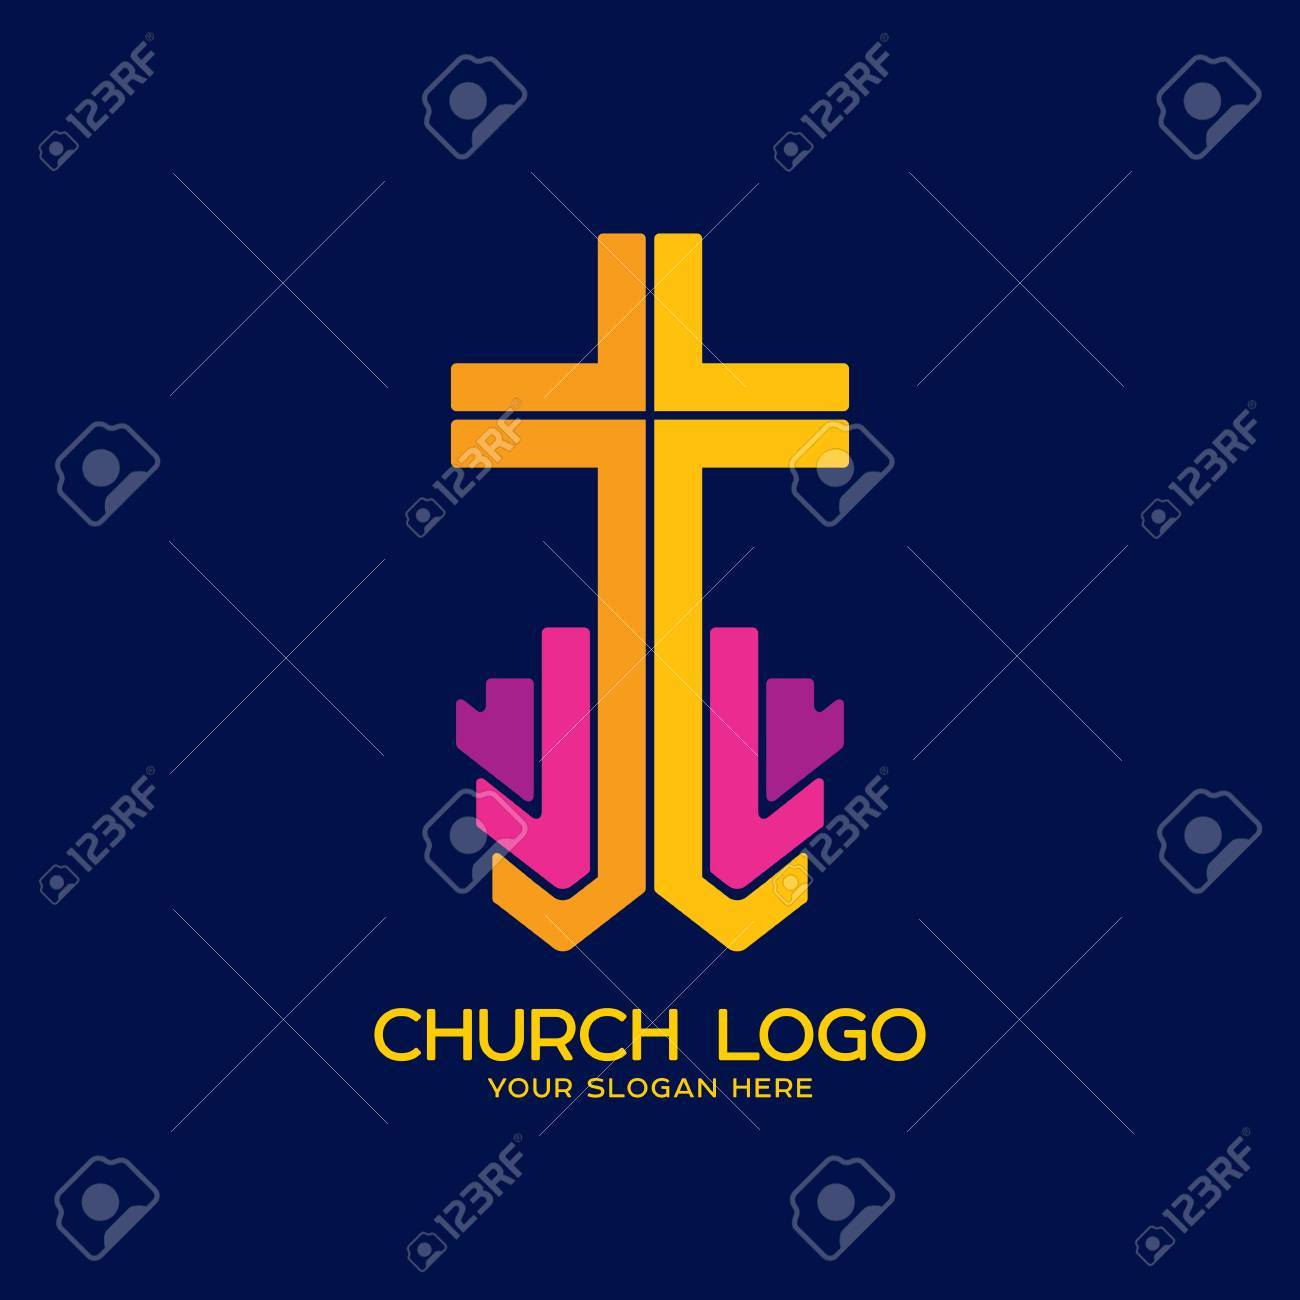 Church logo christian symbols cross of the savior jesus christ church logo christian symbols cross of the savior jesus christ stock vector 81890636 buycottarizona Image collections